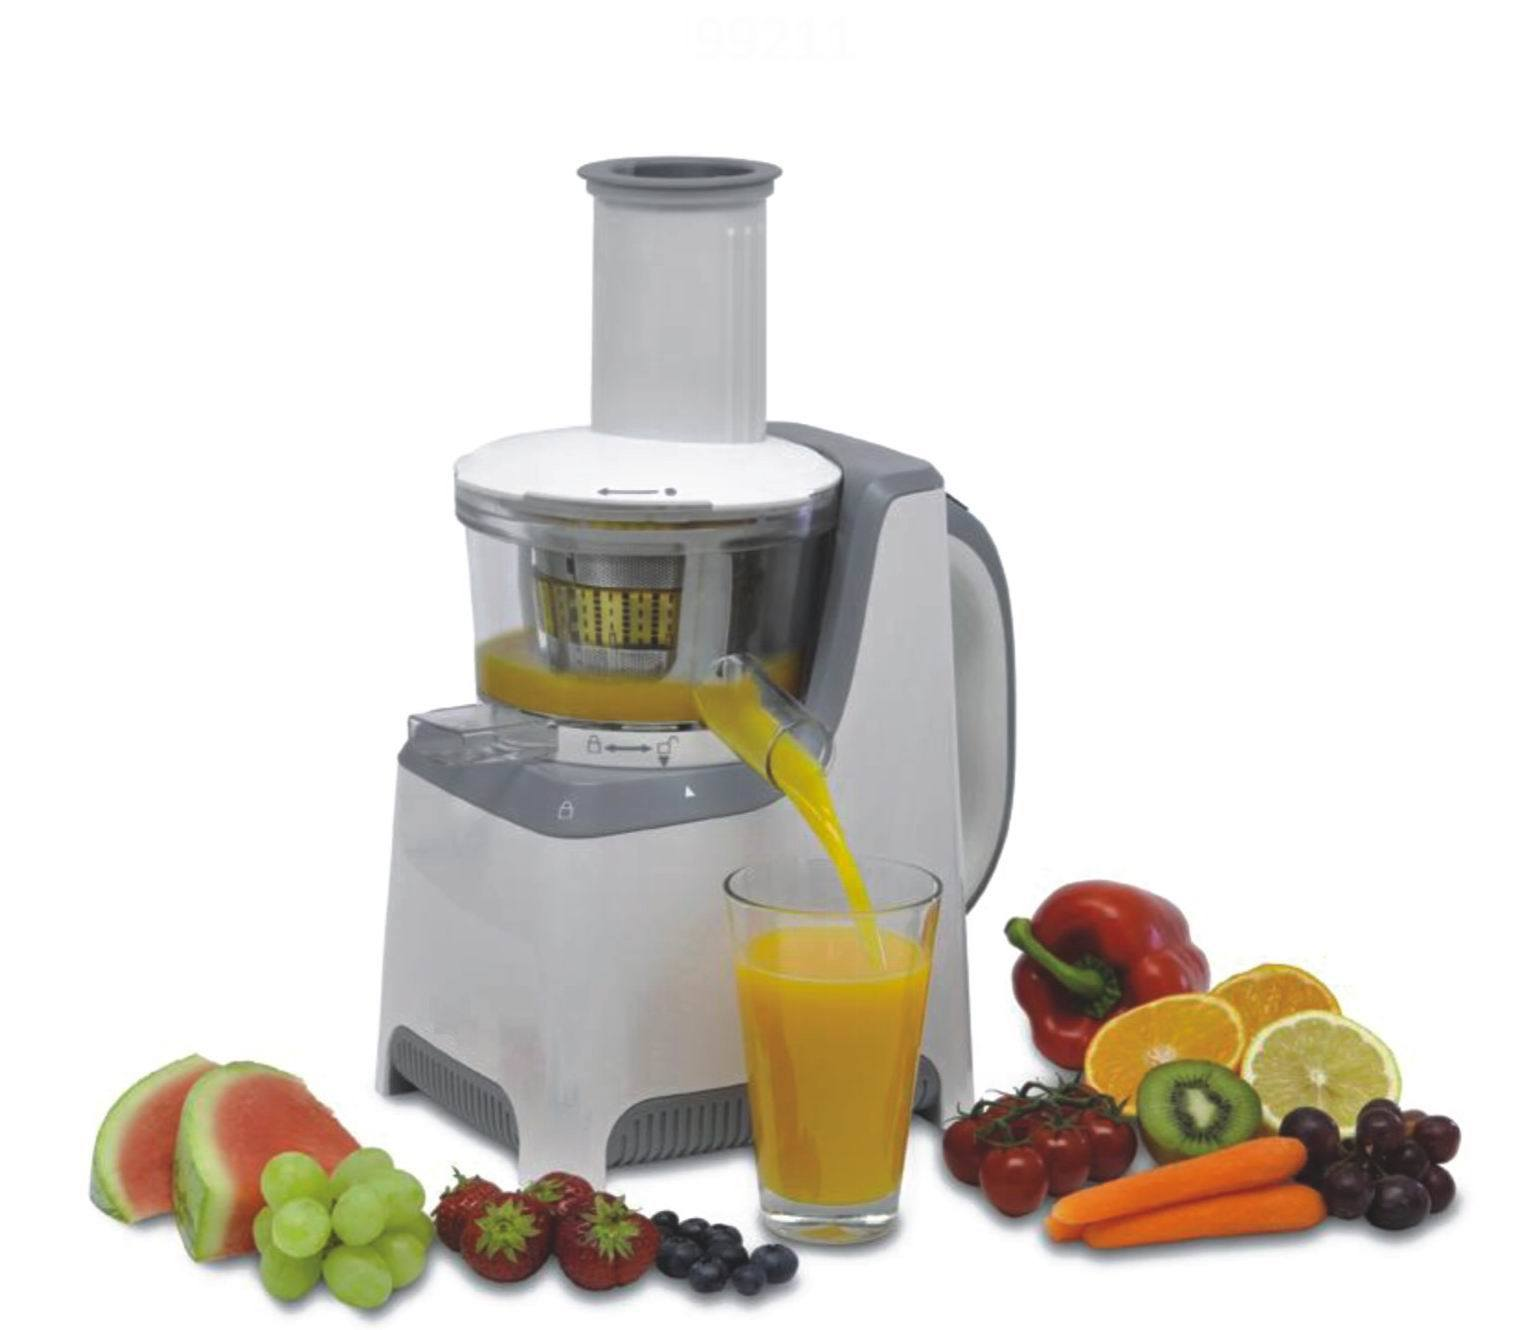 Slow Juicer Taiwan : China Compact Juice Fountain Plus Juice Extractor/ Pink - China Slow Juicer, Single Auger Juicer